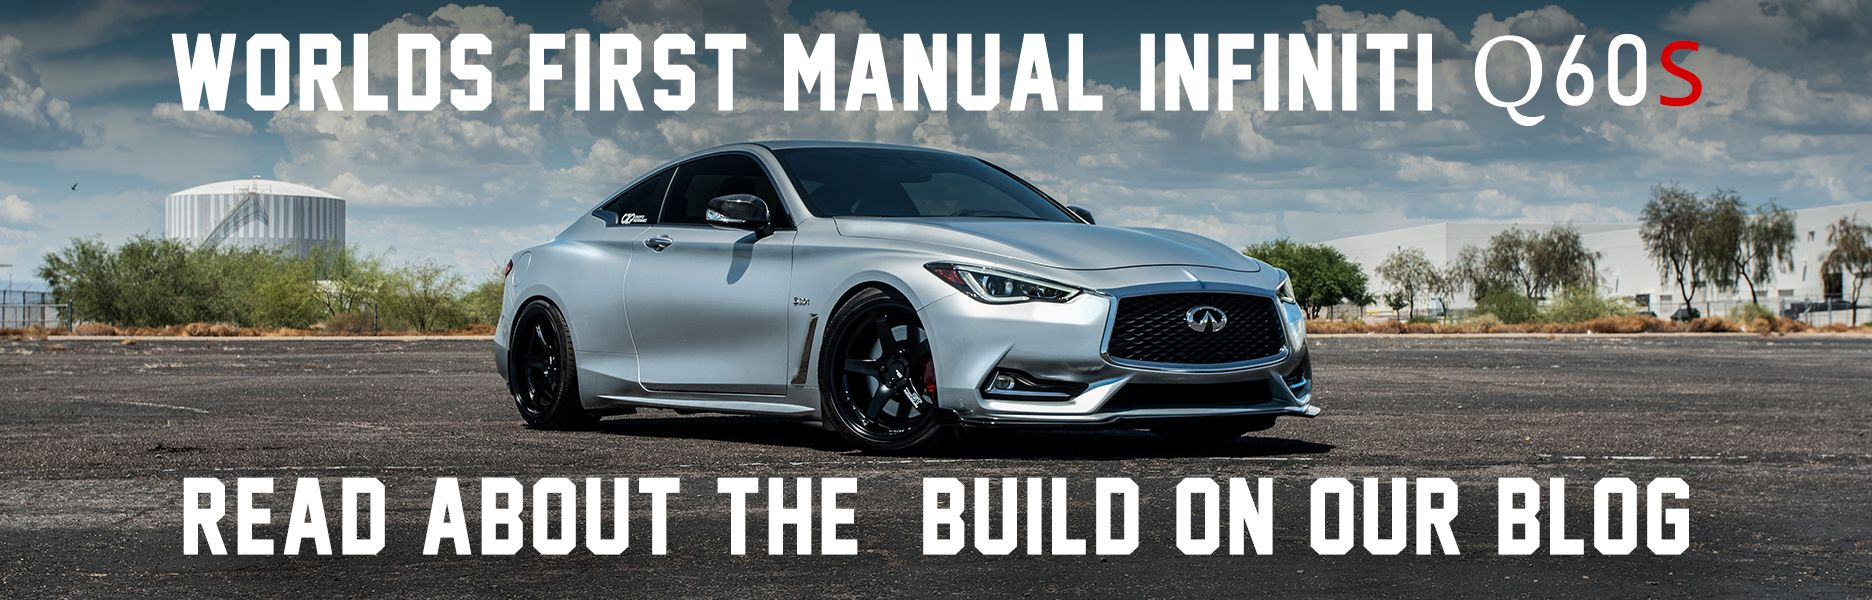 World's First Manual Infiniti Q60S Blog Post